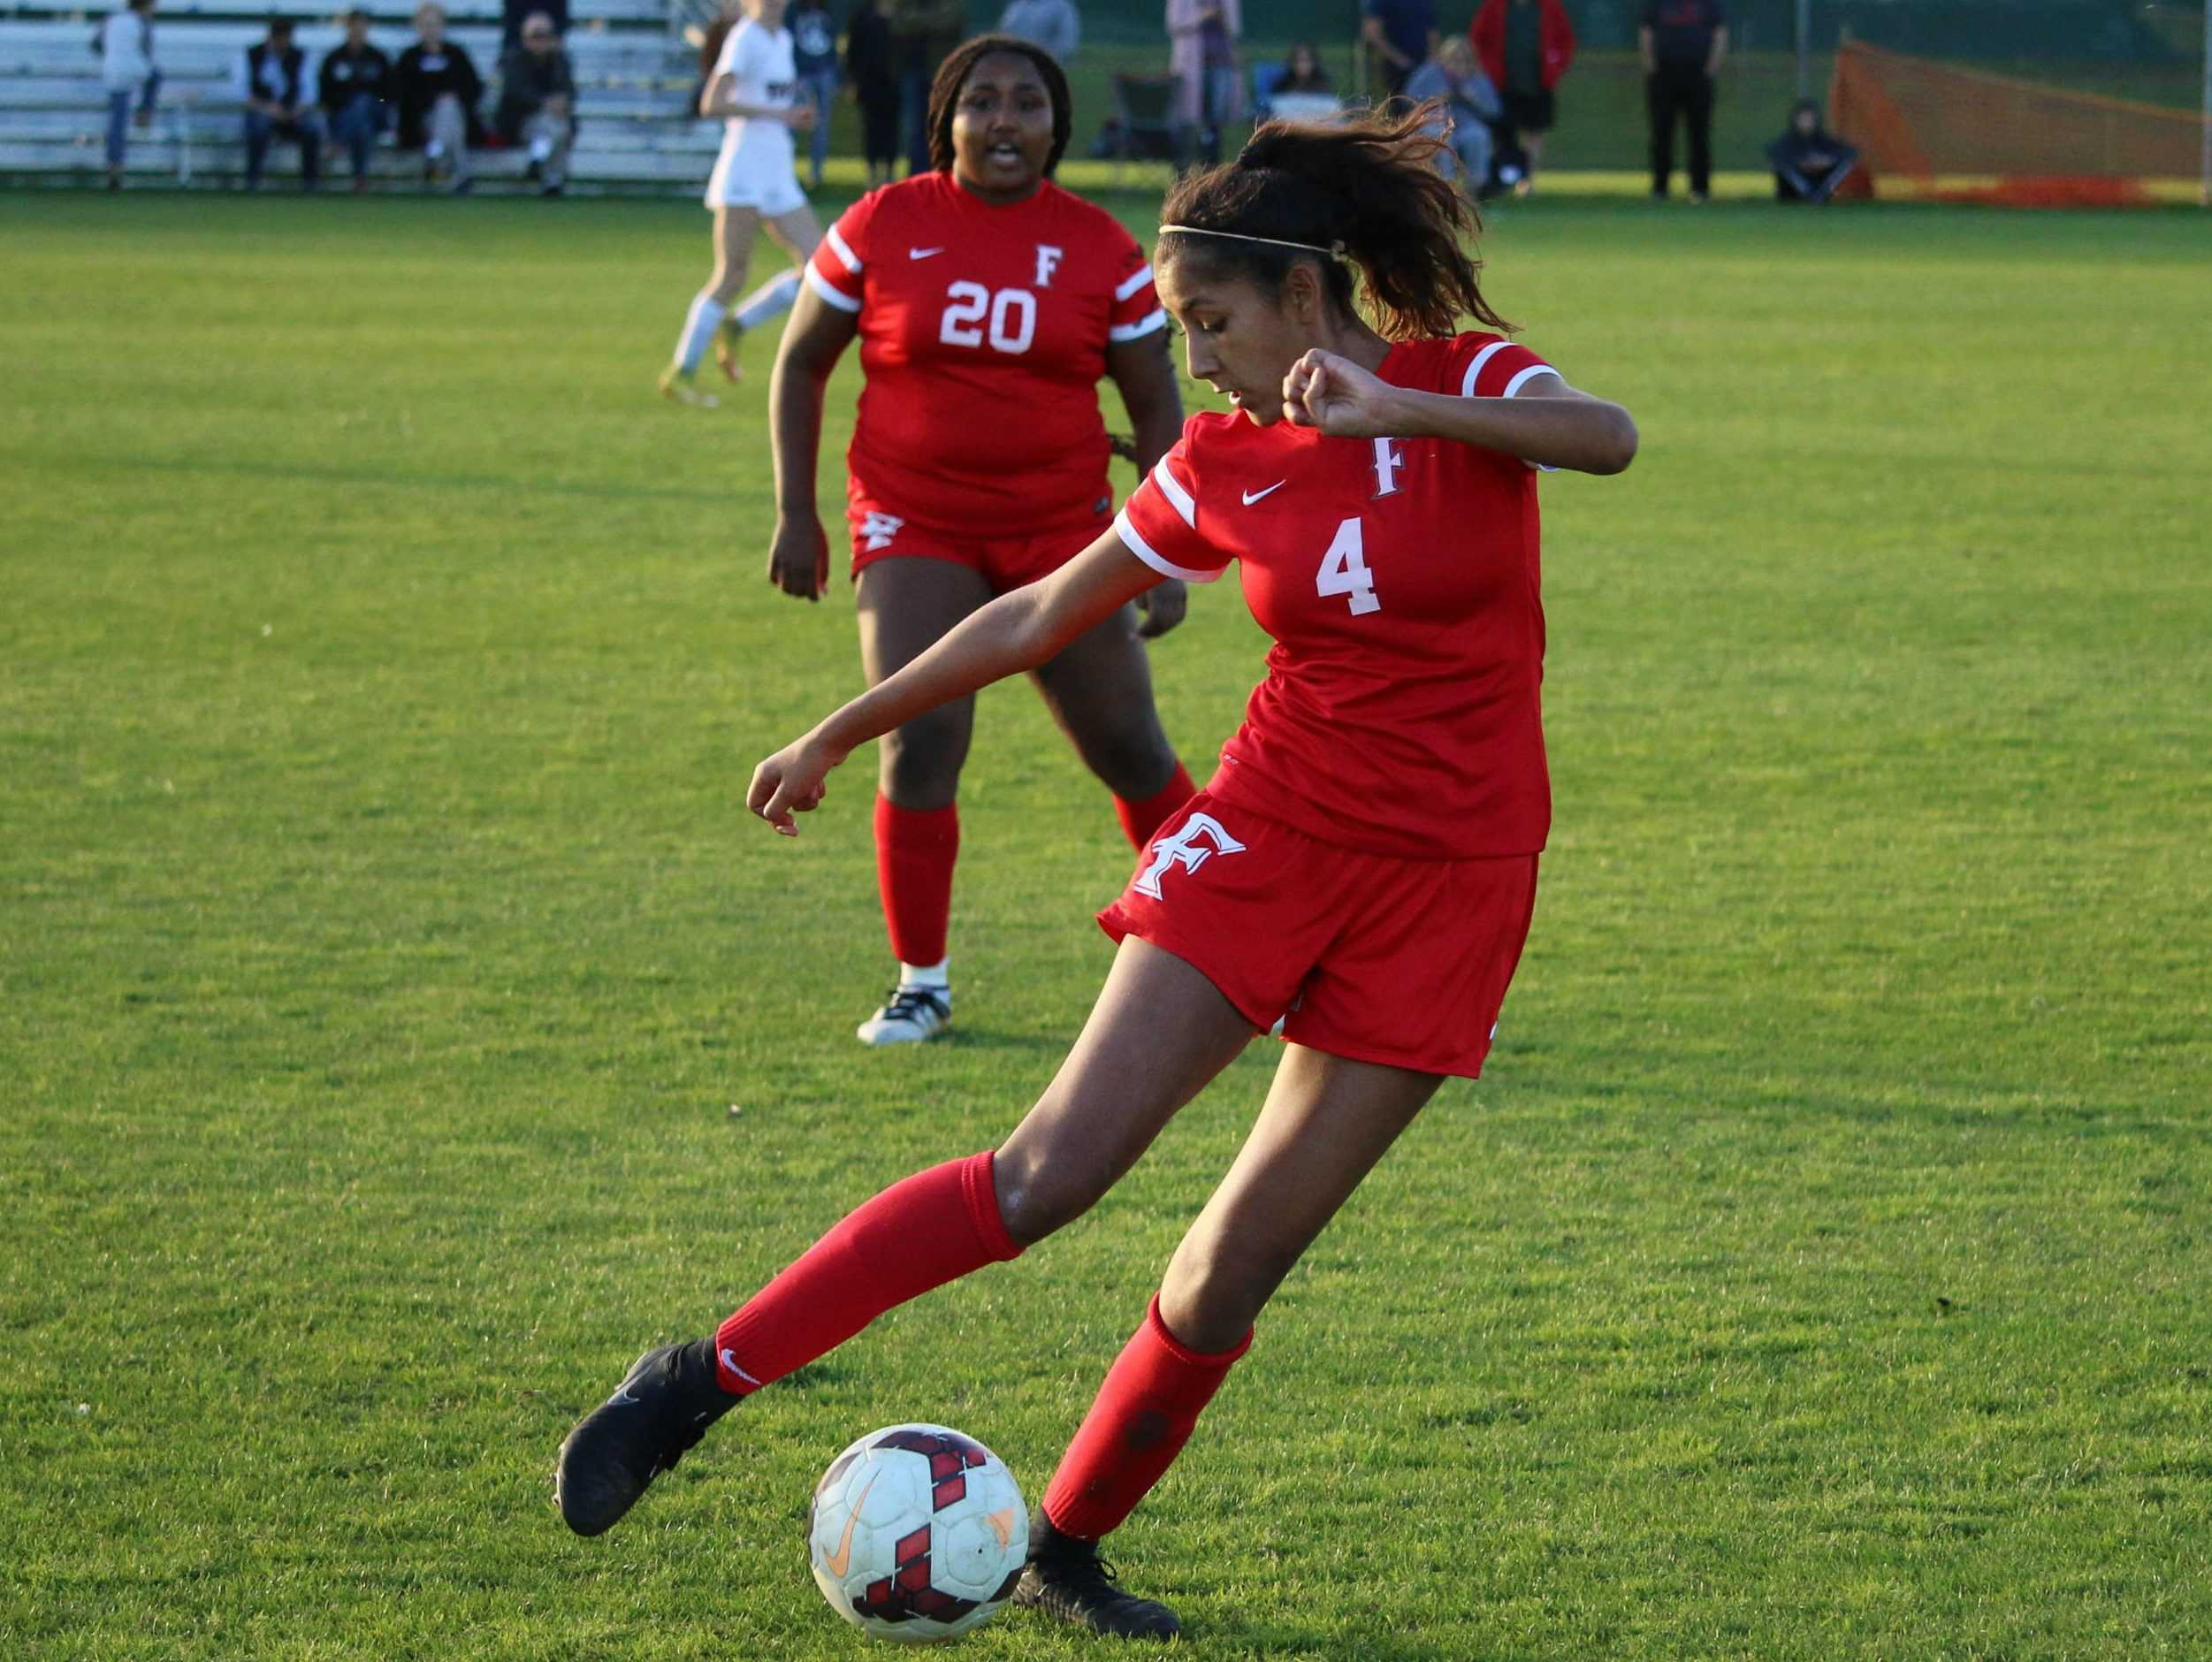 Sophomore Victoria Avina with the ball against Troy High School. Photo by Manuel Moreno.